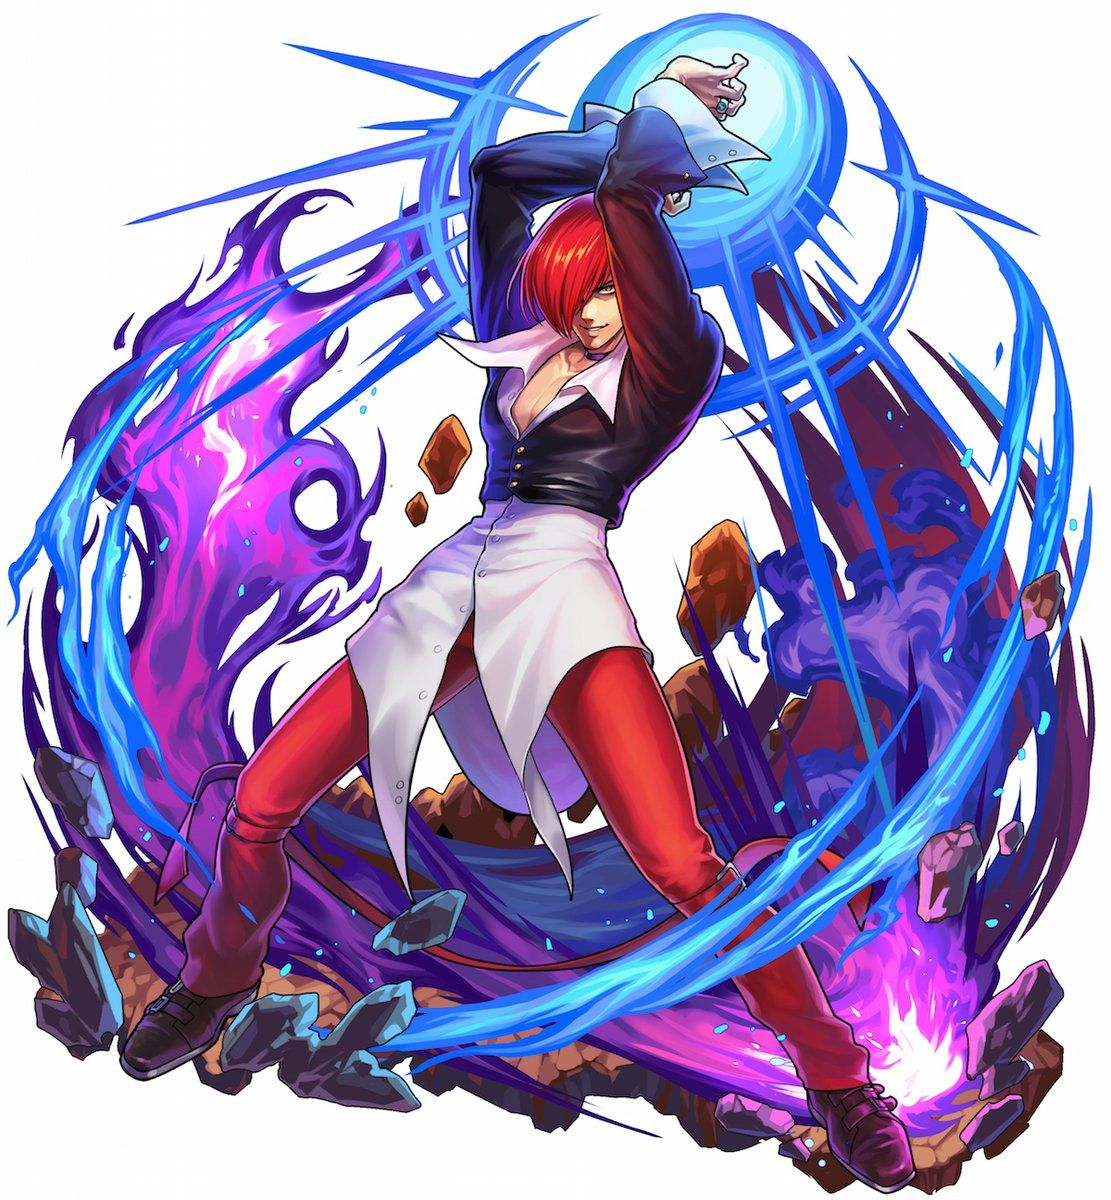 Https Vignette Wikia Nocookie Net Snk Images F F5 Boku To Dragon Iori Jpg Revision Latest Cb 20 In 2020 King Of Fighters Street Fighter Art Street Fighter Characters